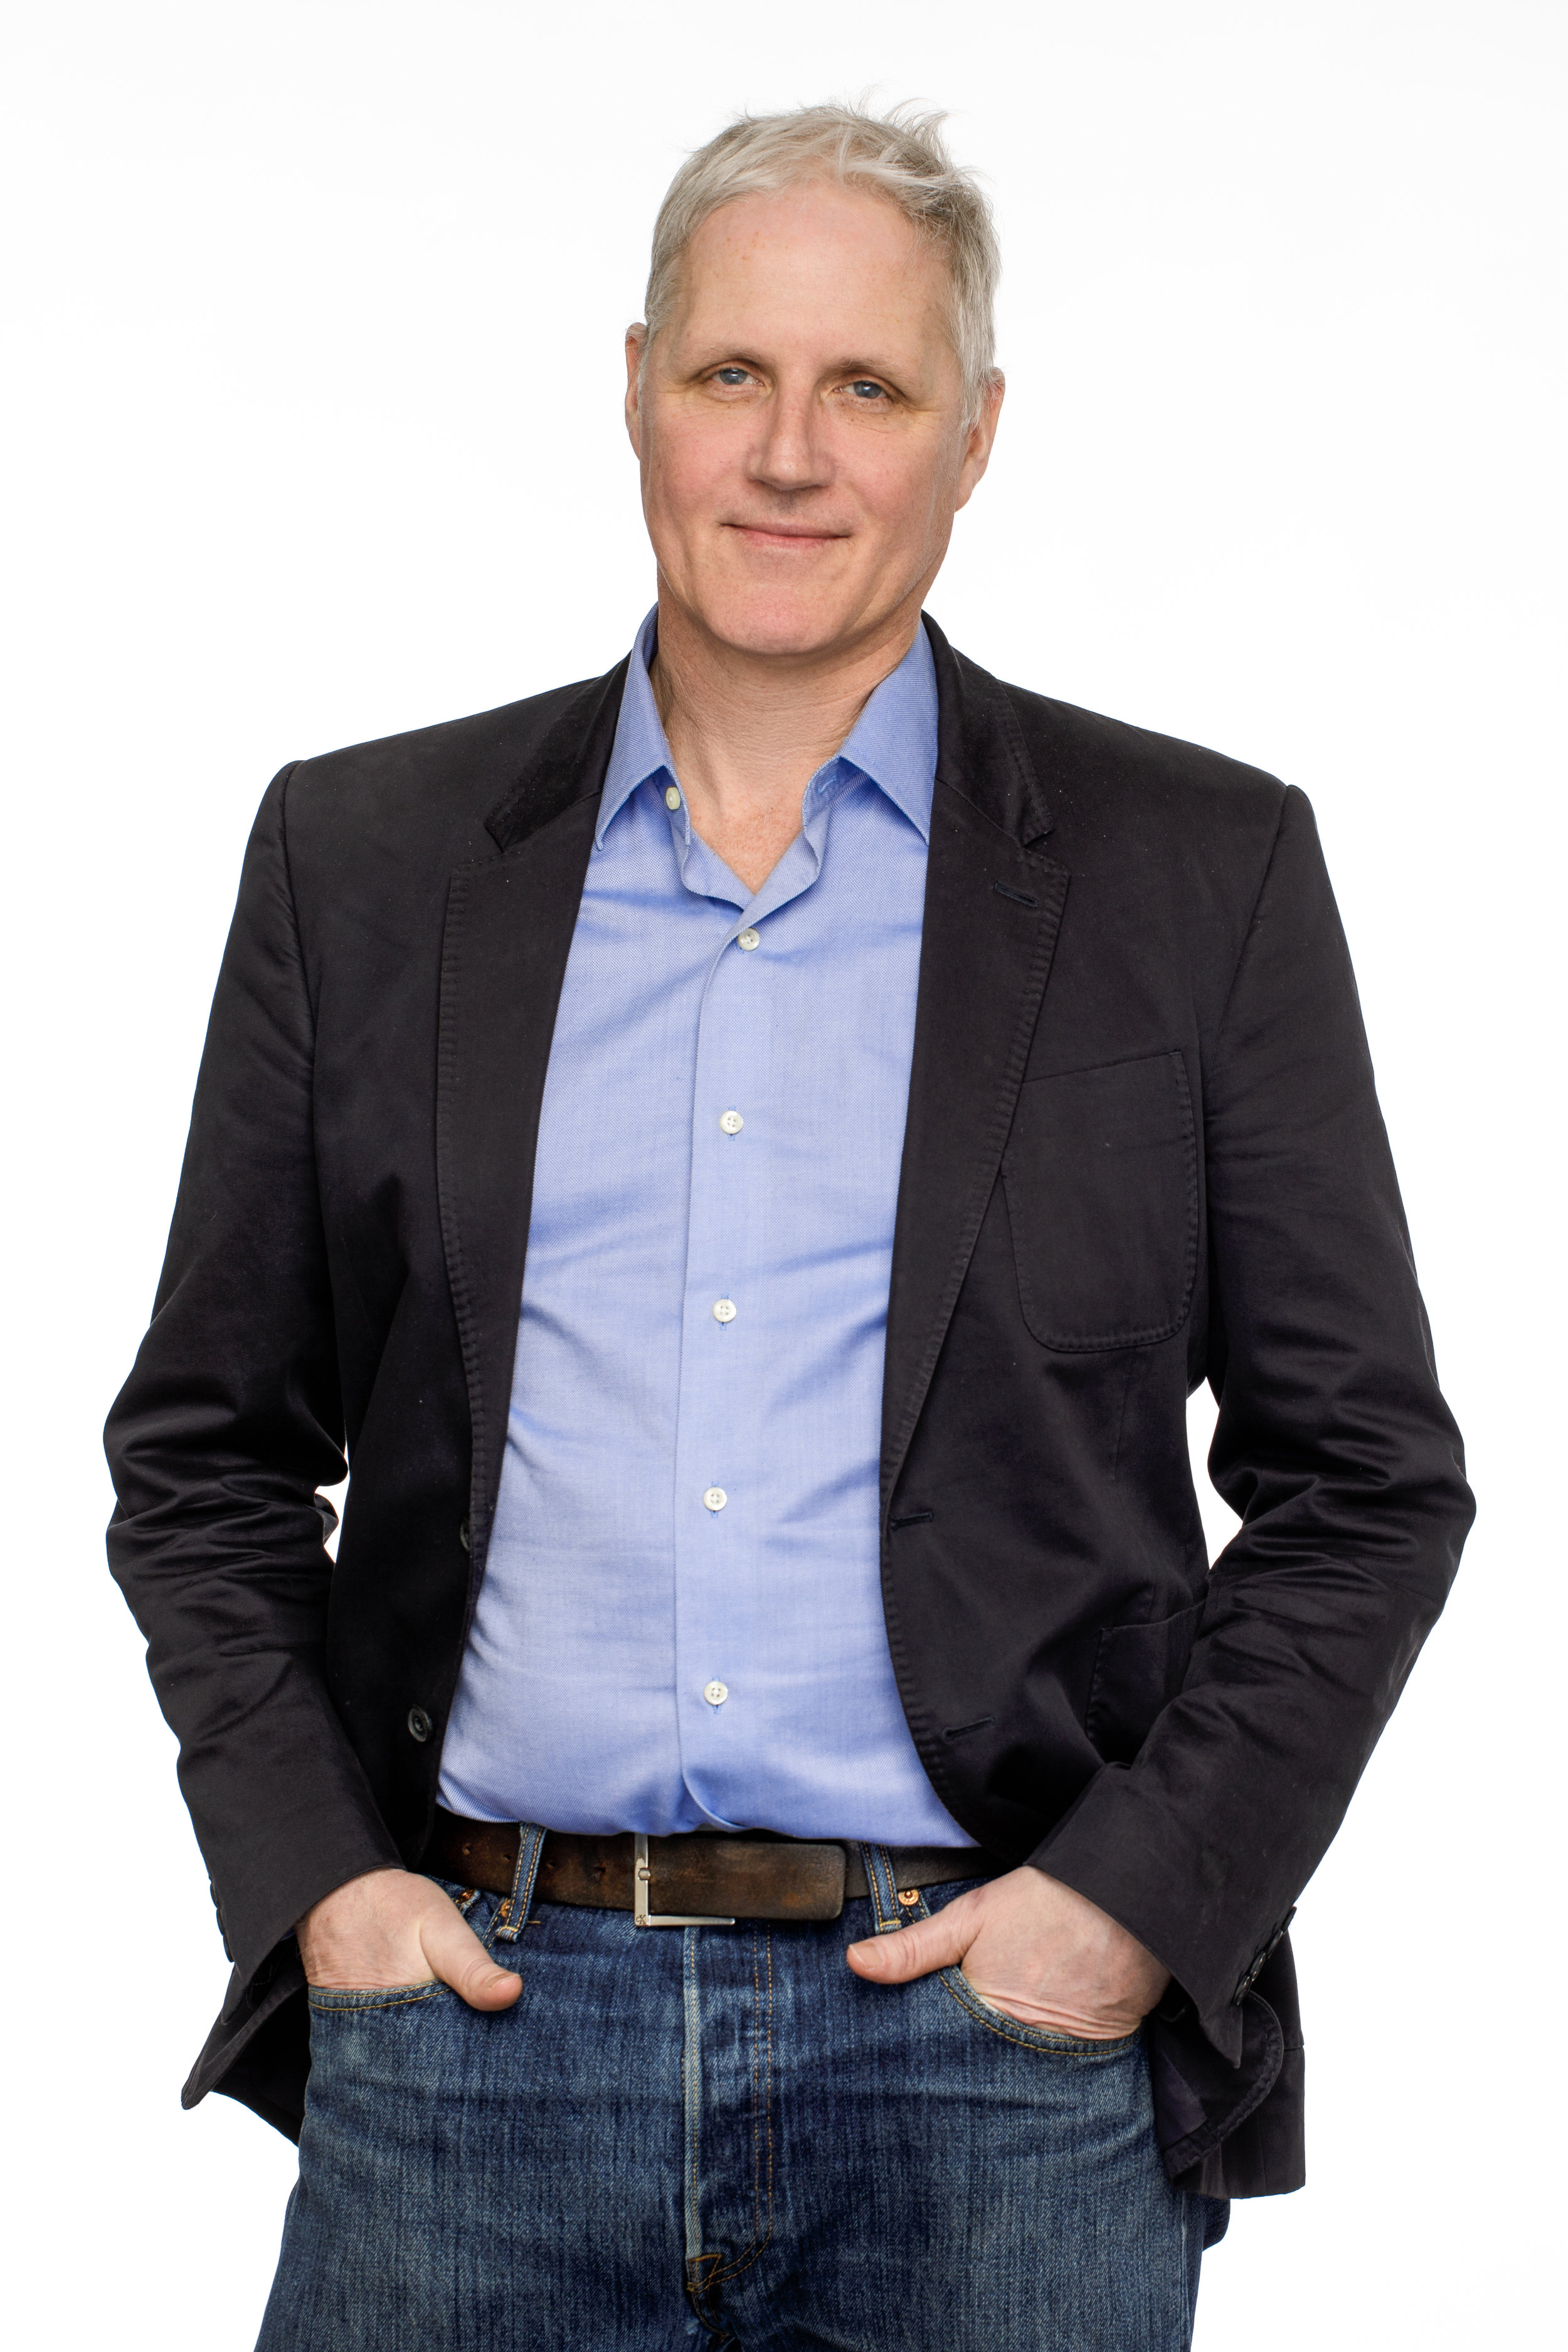 Michael Fitzgerald, Founder and CEO of Submittable